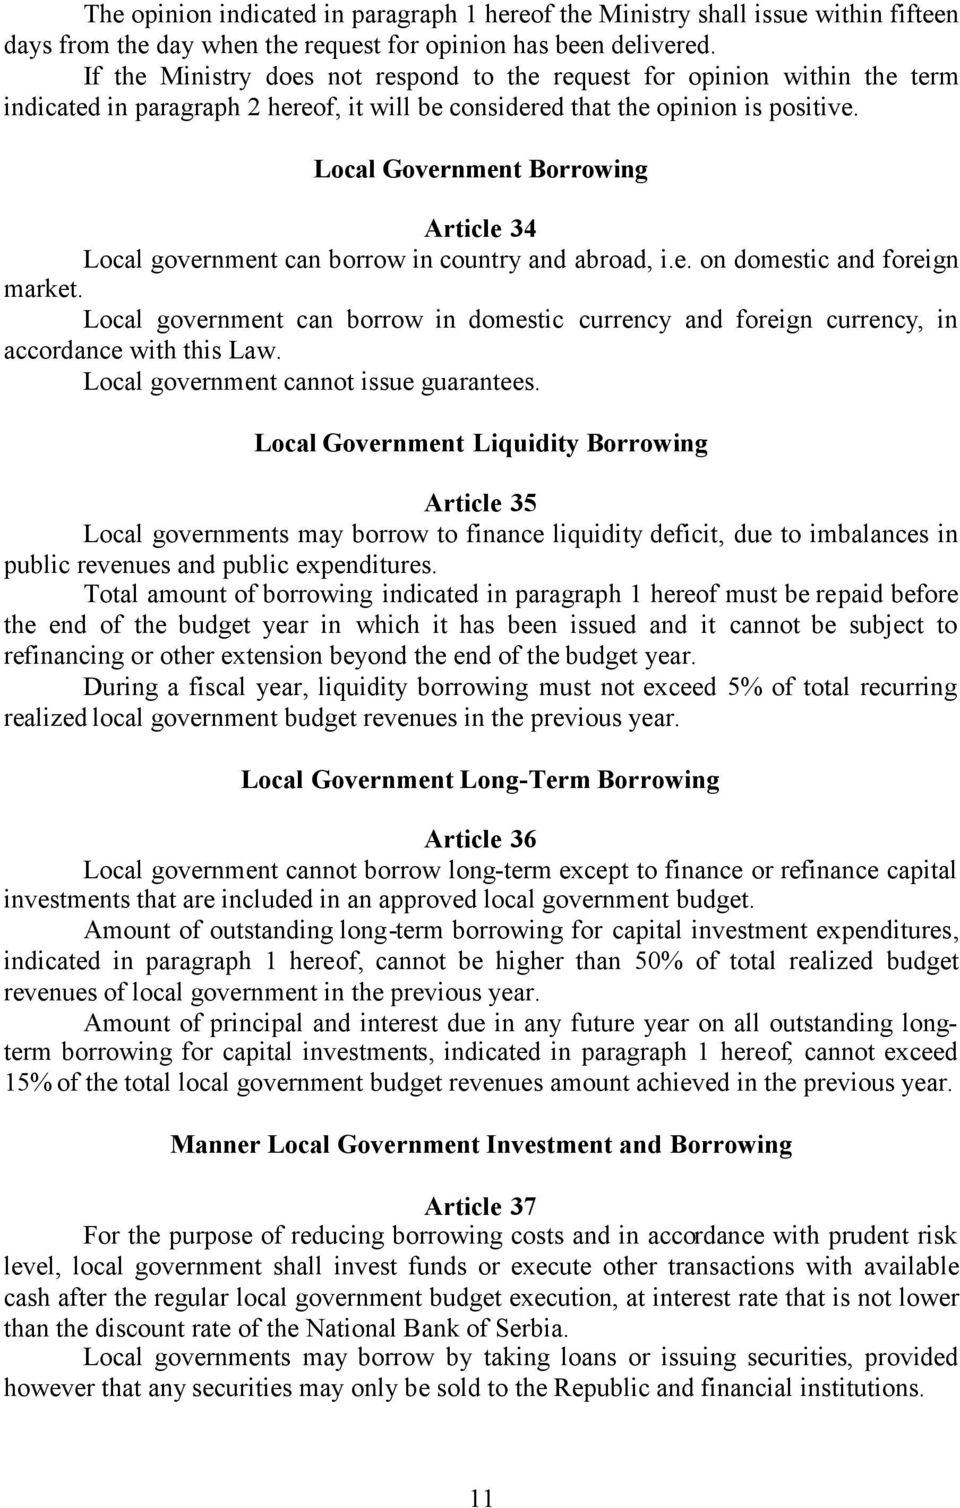 Local Government Borrowing Article 34 Local government can borrow in country and abroad, i.e. on domestic and foreign market.